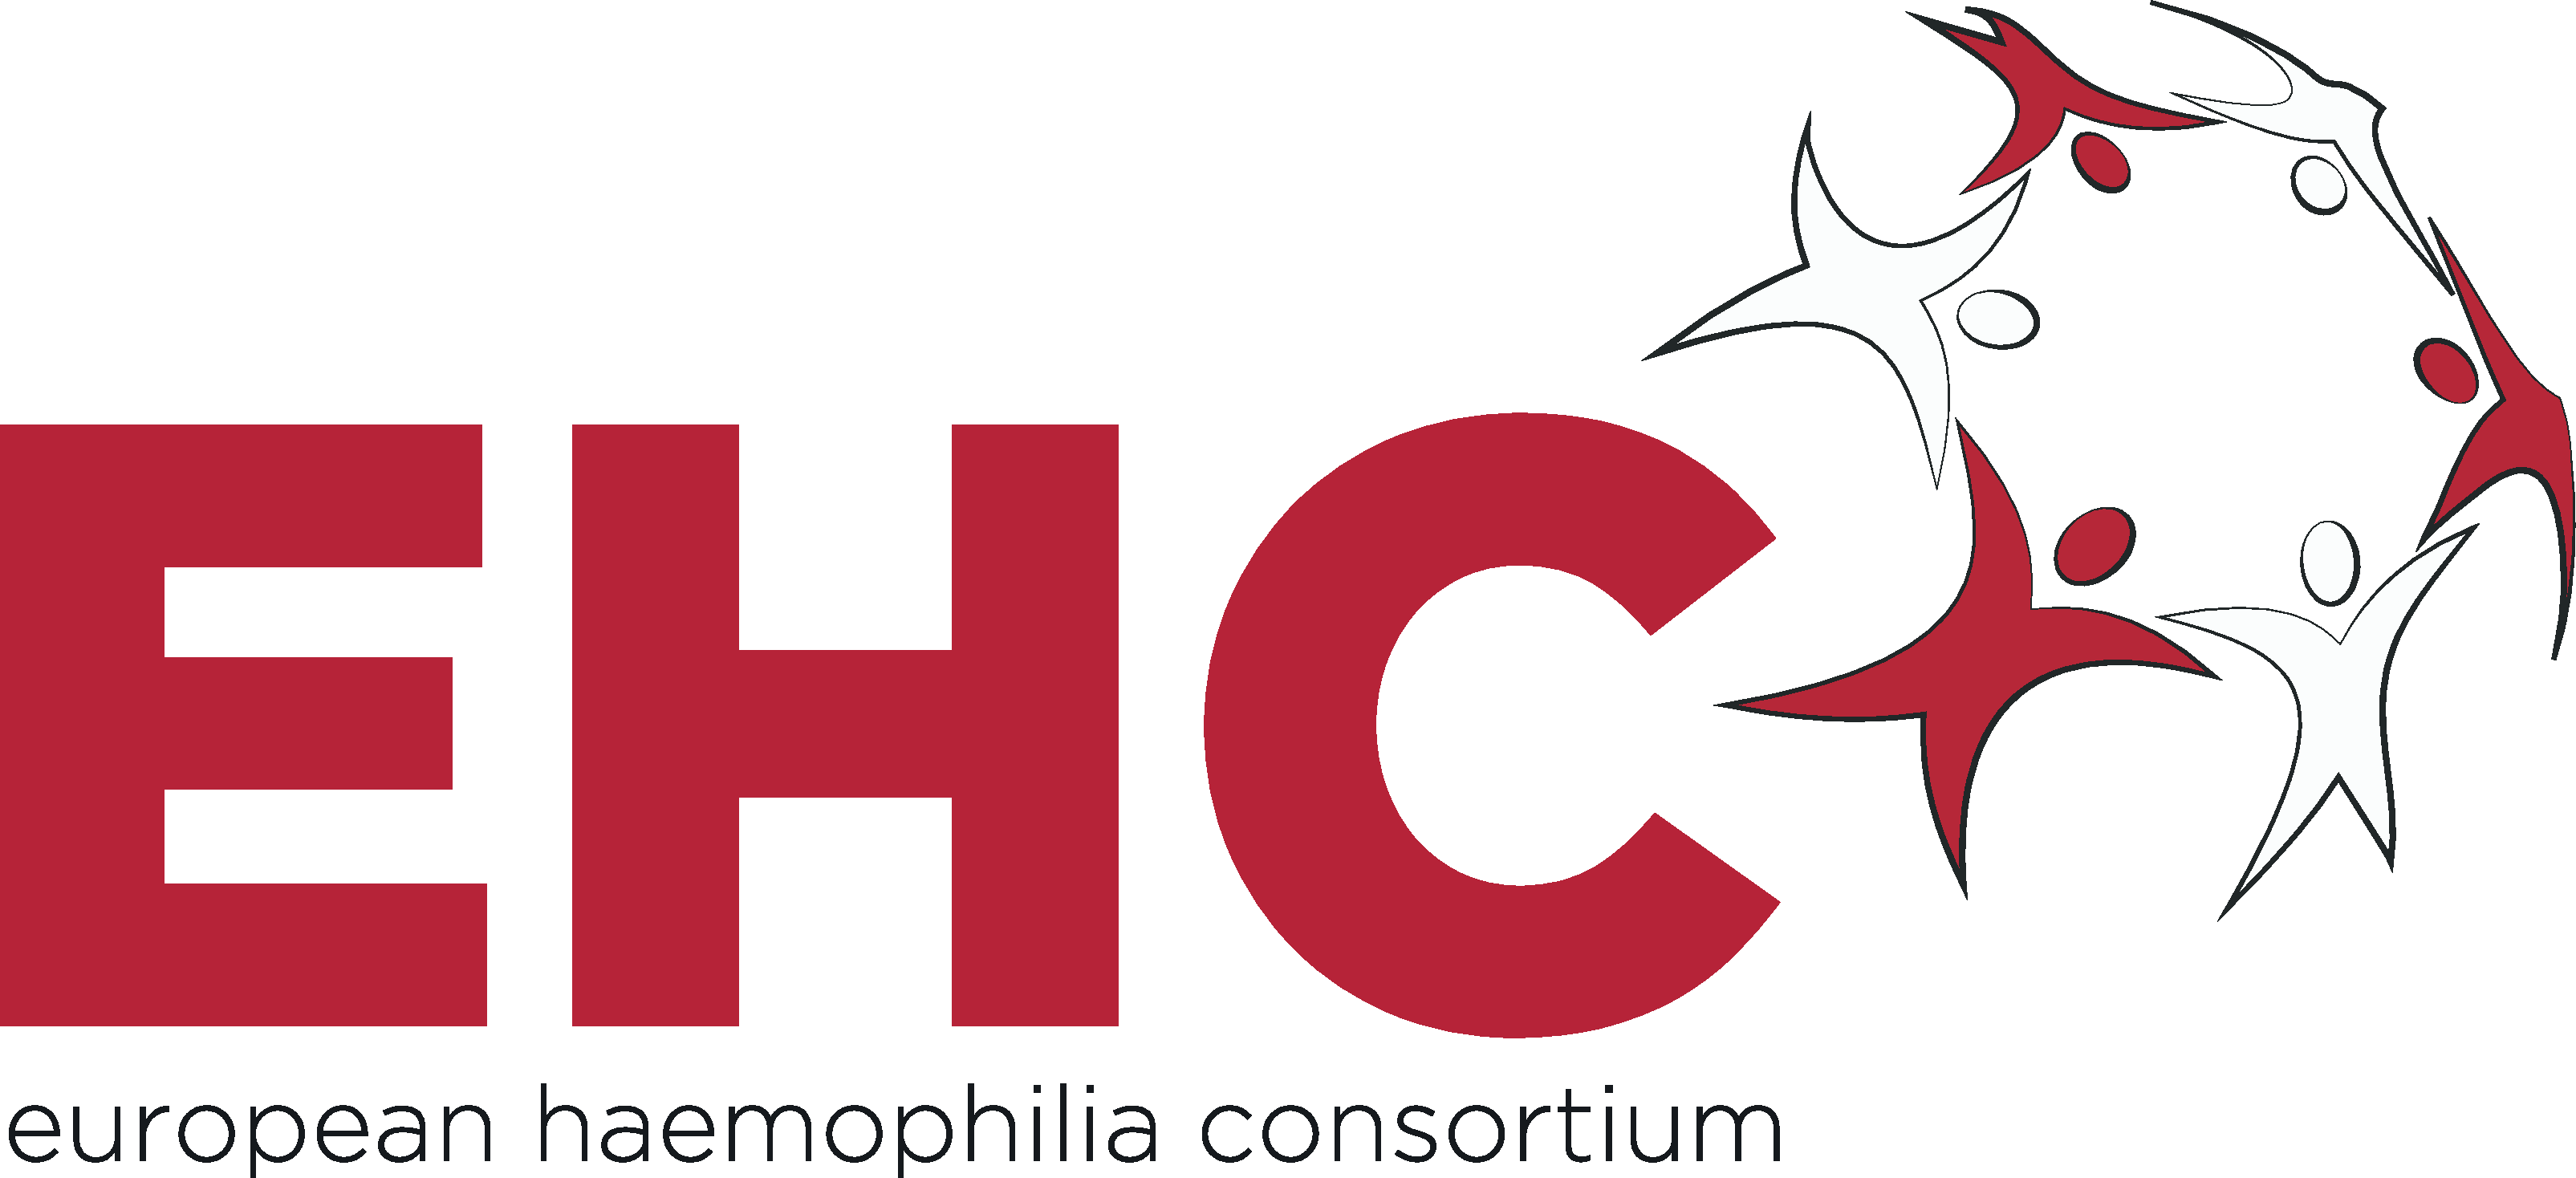 EHC – European Haemophilia Consortium -  - /ehc-now-novel-technologies-in-haemophilia-care-ehc-tried-and-tested-methods-to-keep-up-to-date-with-an-evolving-medical-landscape/